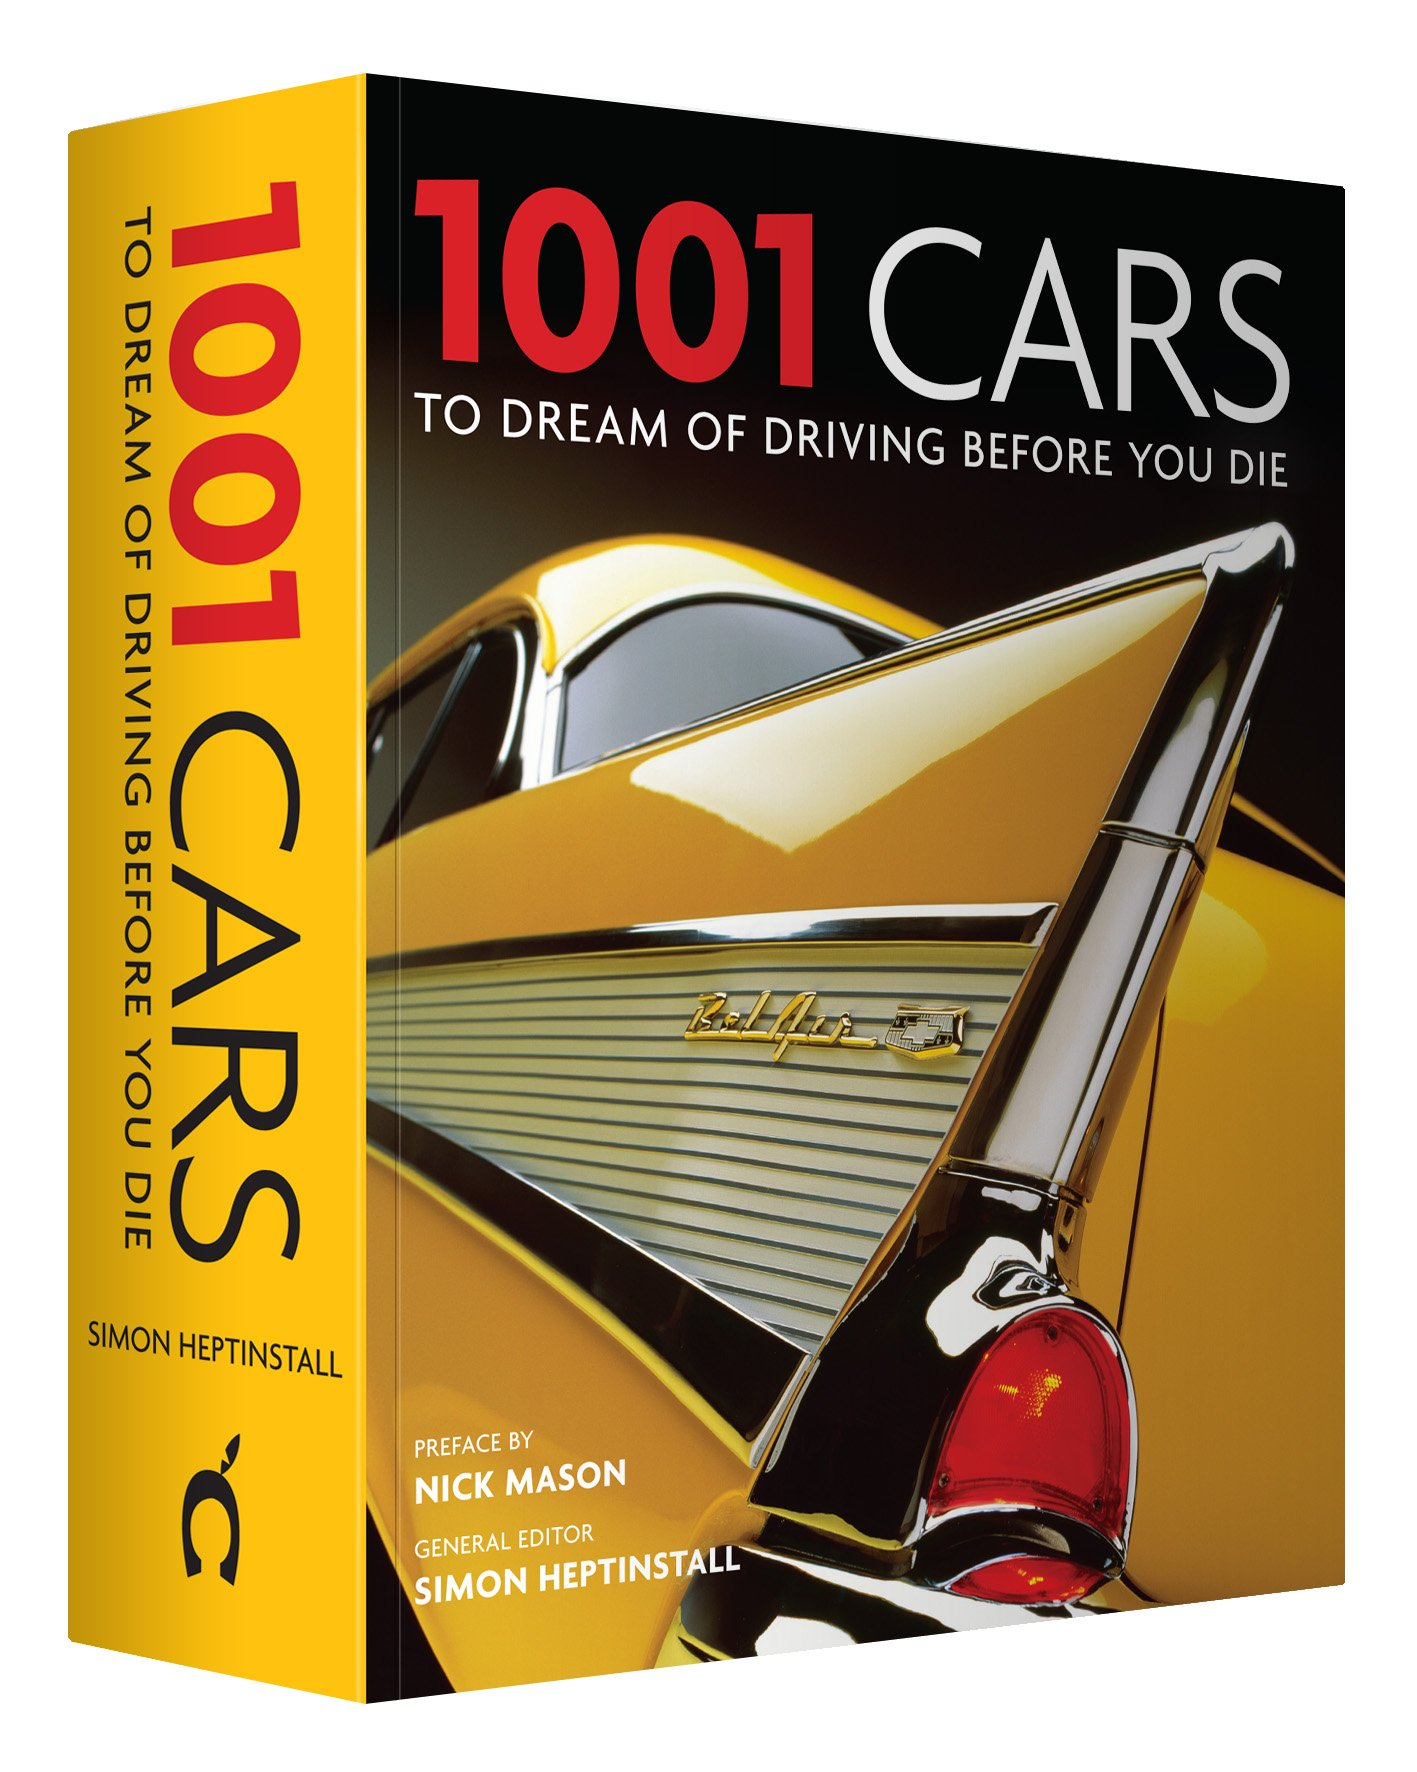 1001 Cars to Dream of Driving Before You Die: Simon Heptinsall:  9781844037247: Amazon.com: Books